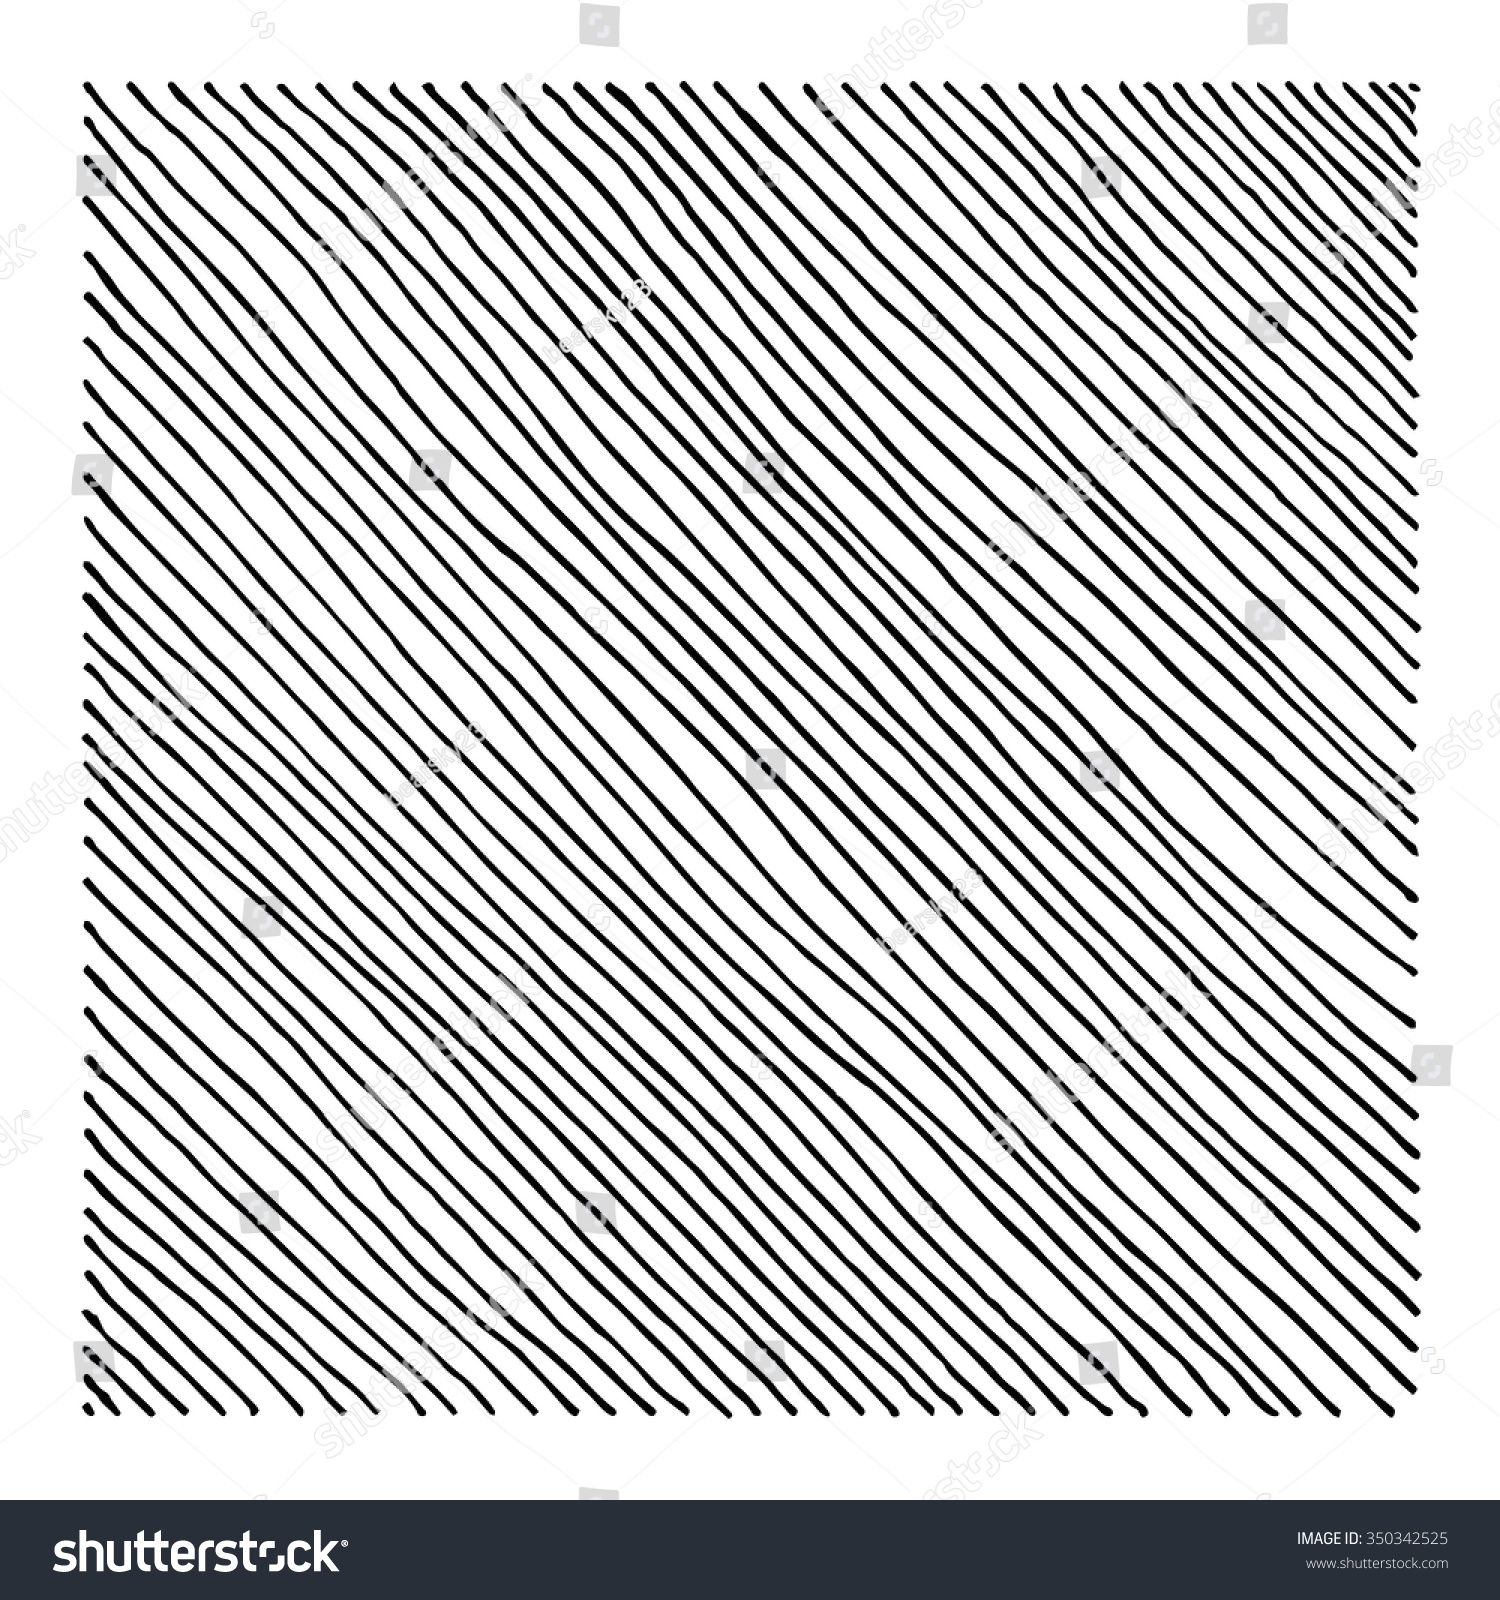 Straight Line Art Vector : Hand drawn straight black diagonal lines stock vector